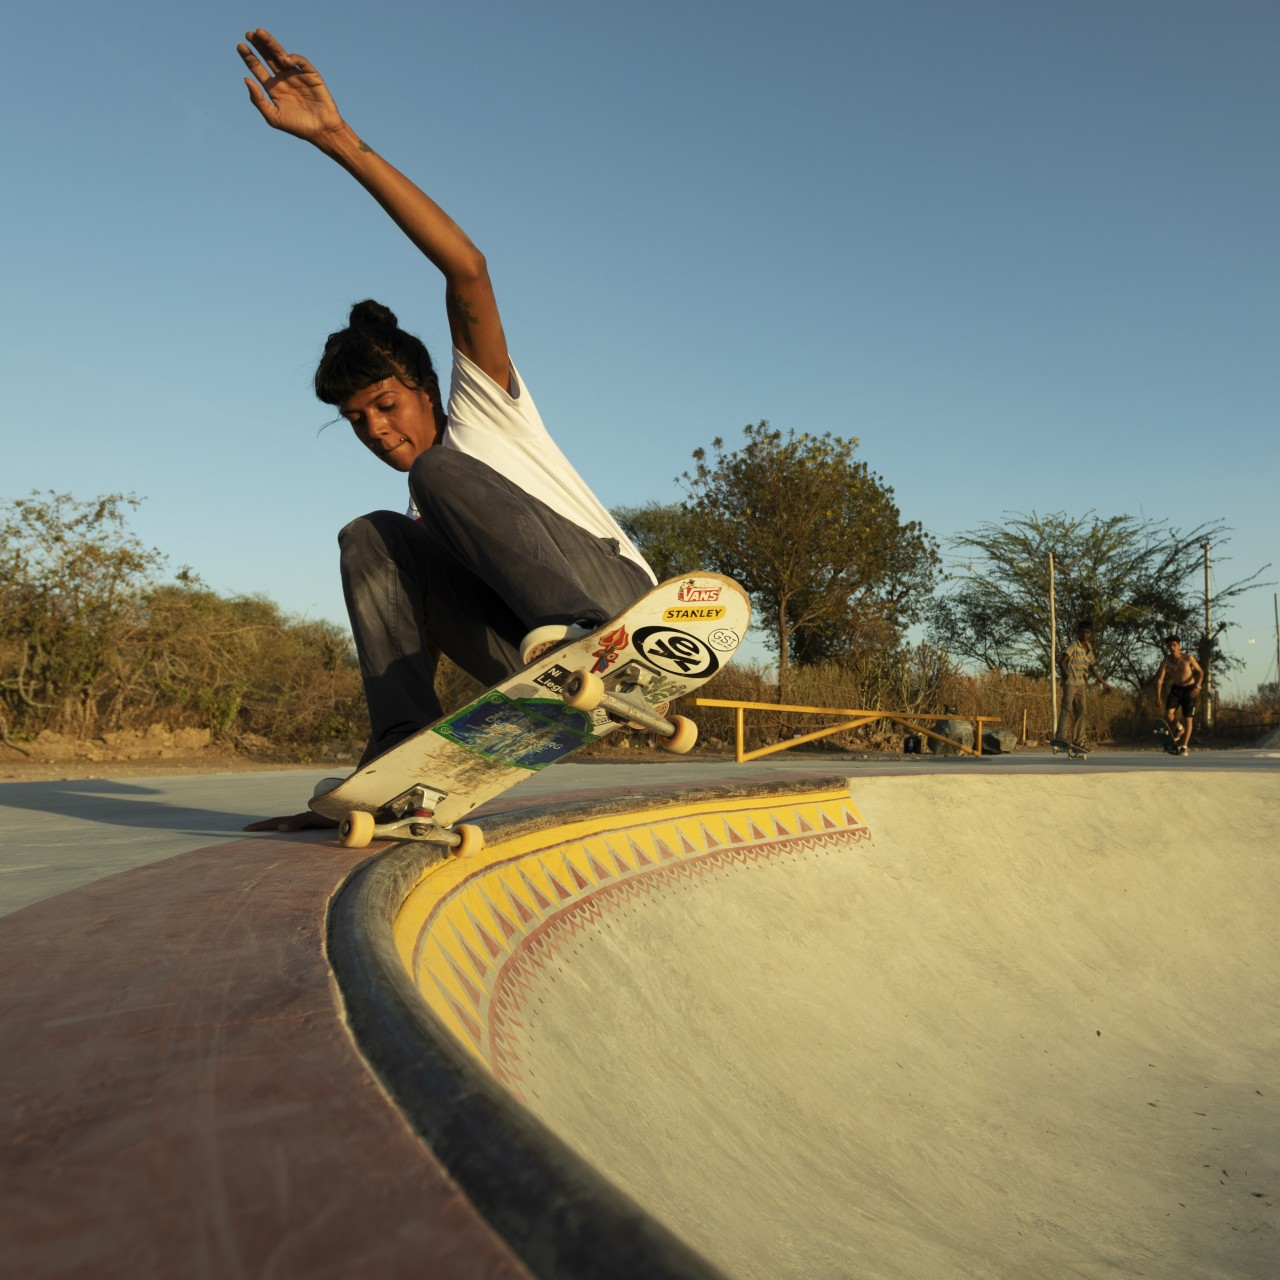 India's female skateboarders look to break with tradition, empower